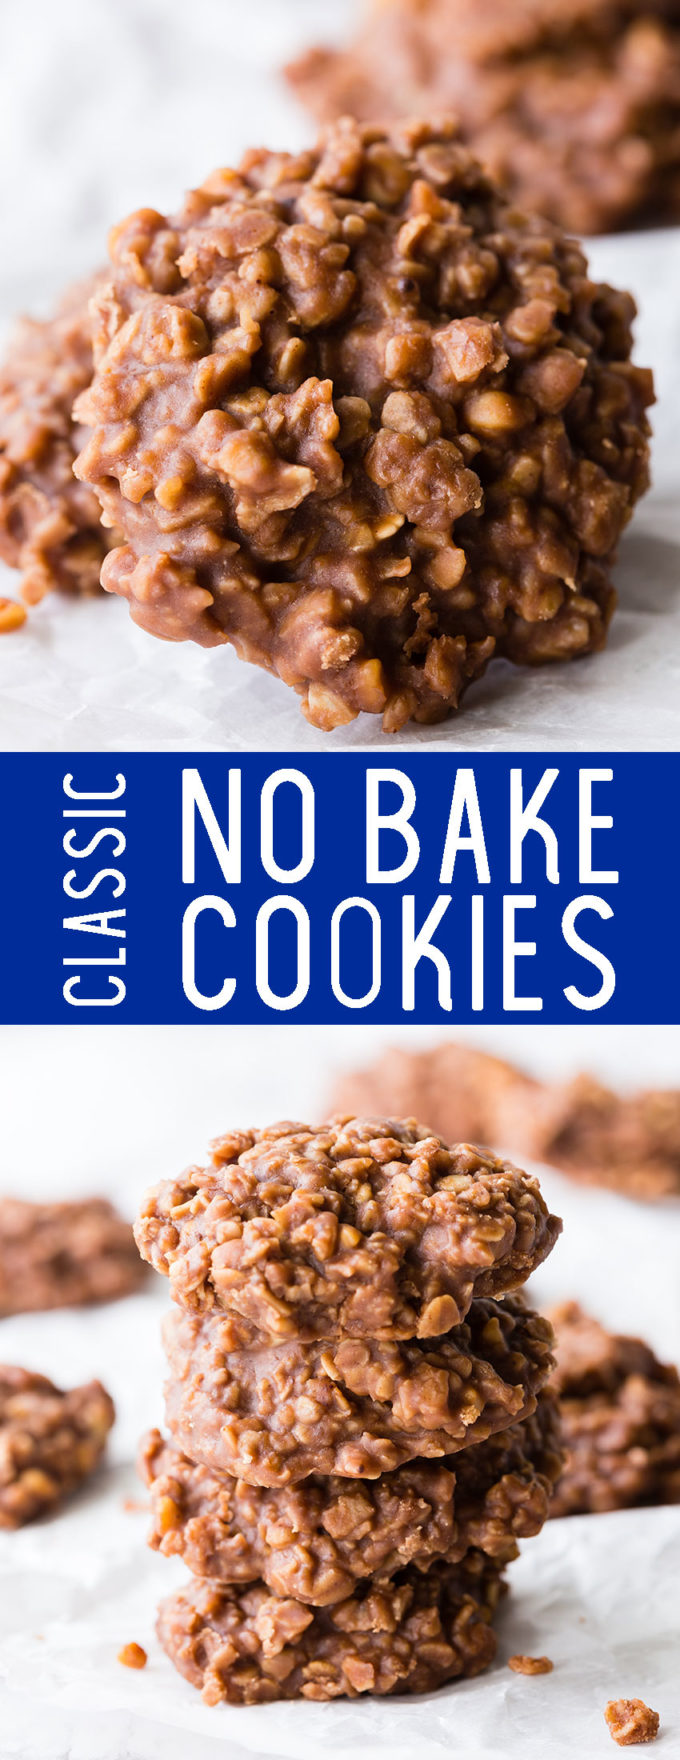 Classic no bake cookies, these chocolate and peanut butter treats are the best.